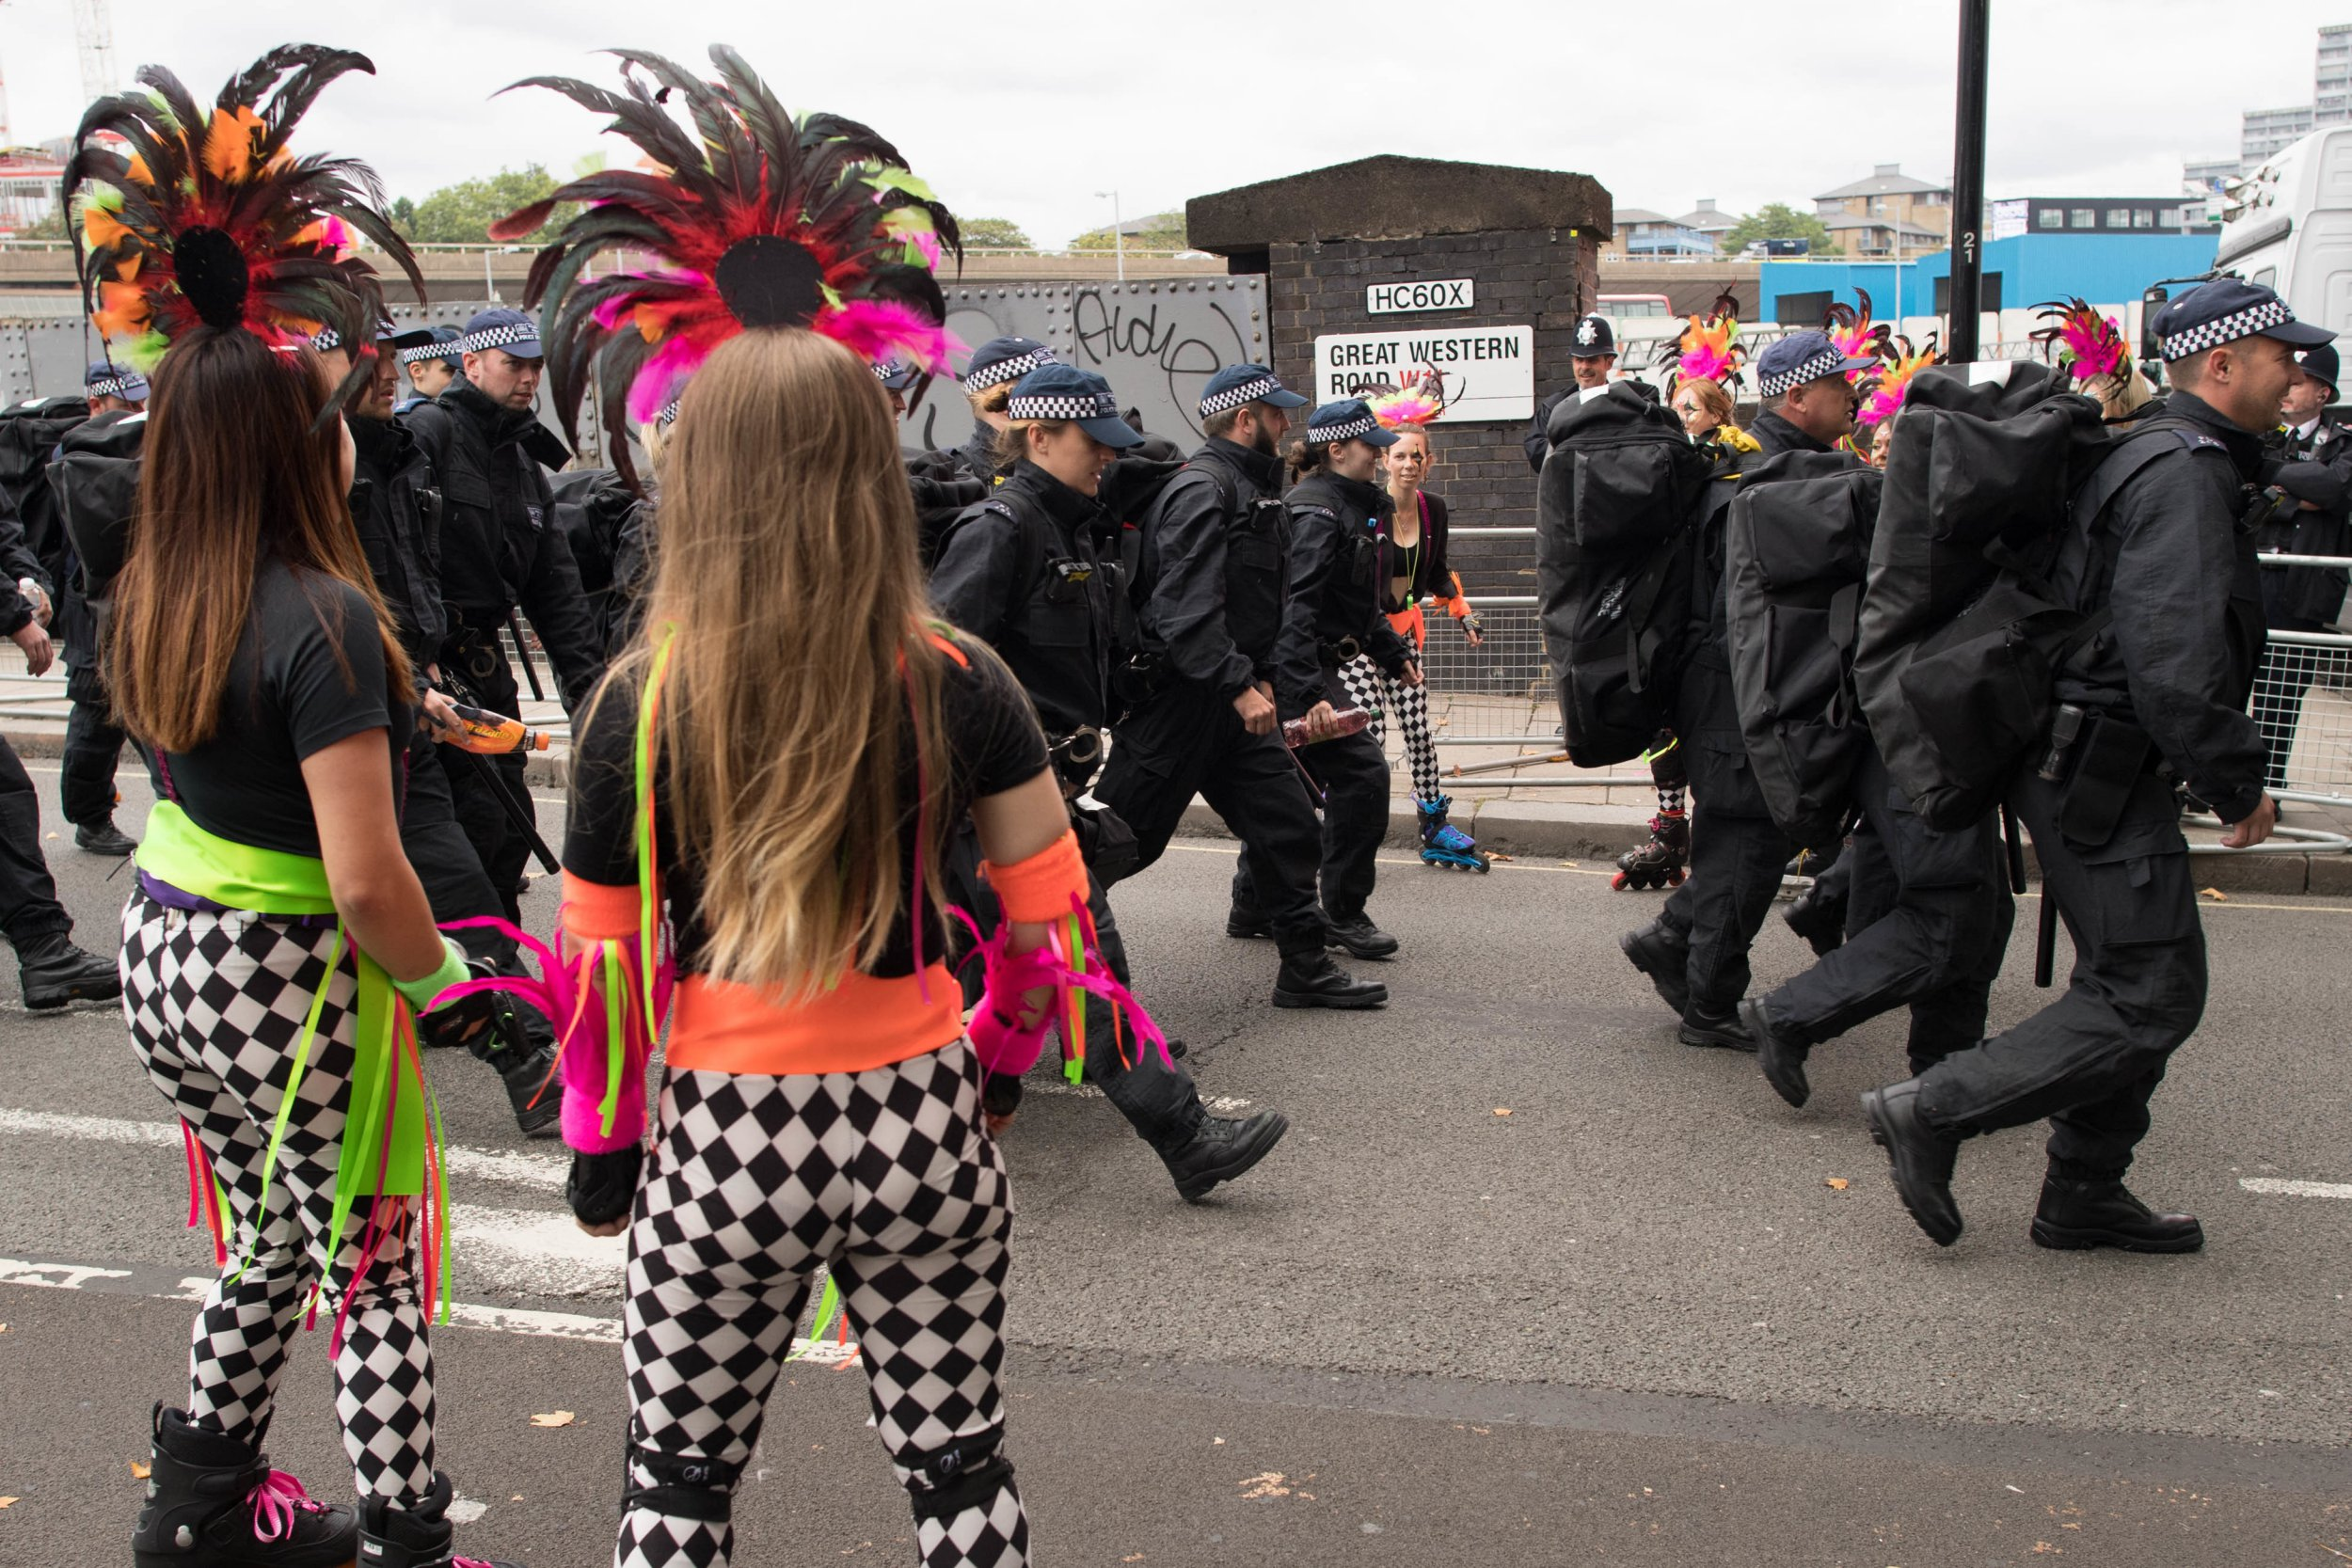 Notting Hill Carnival subjected to section 60 order to prevent violence